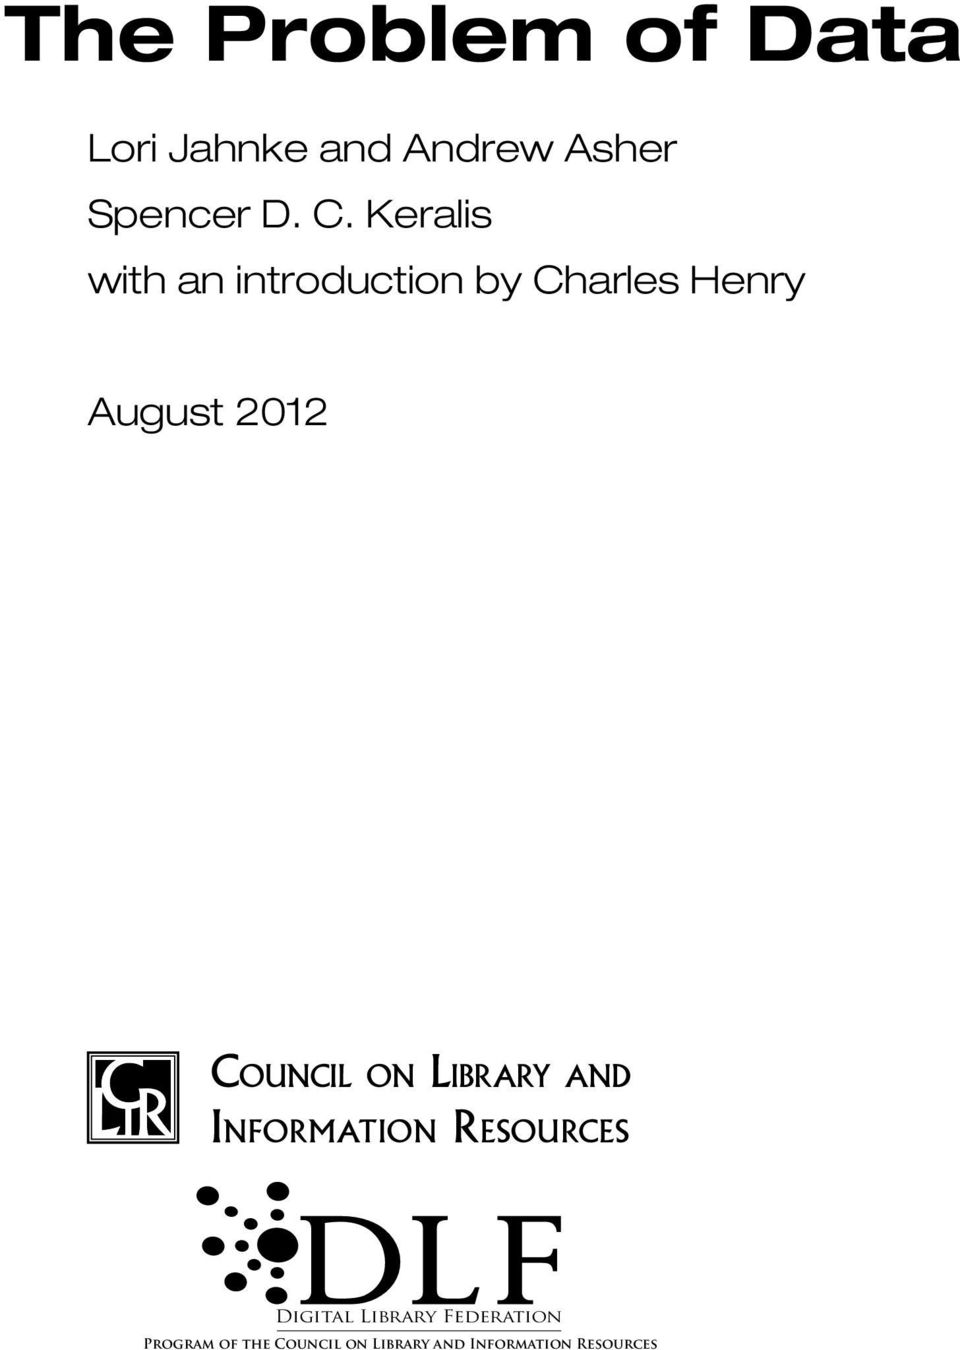 Council on Library and Information Resources Digital Library